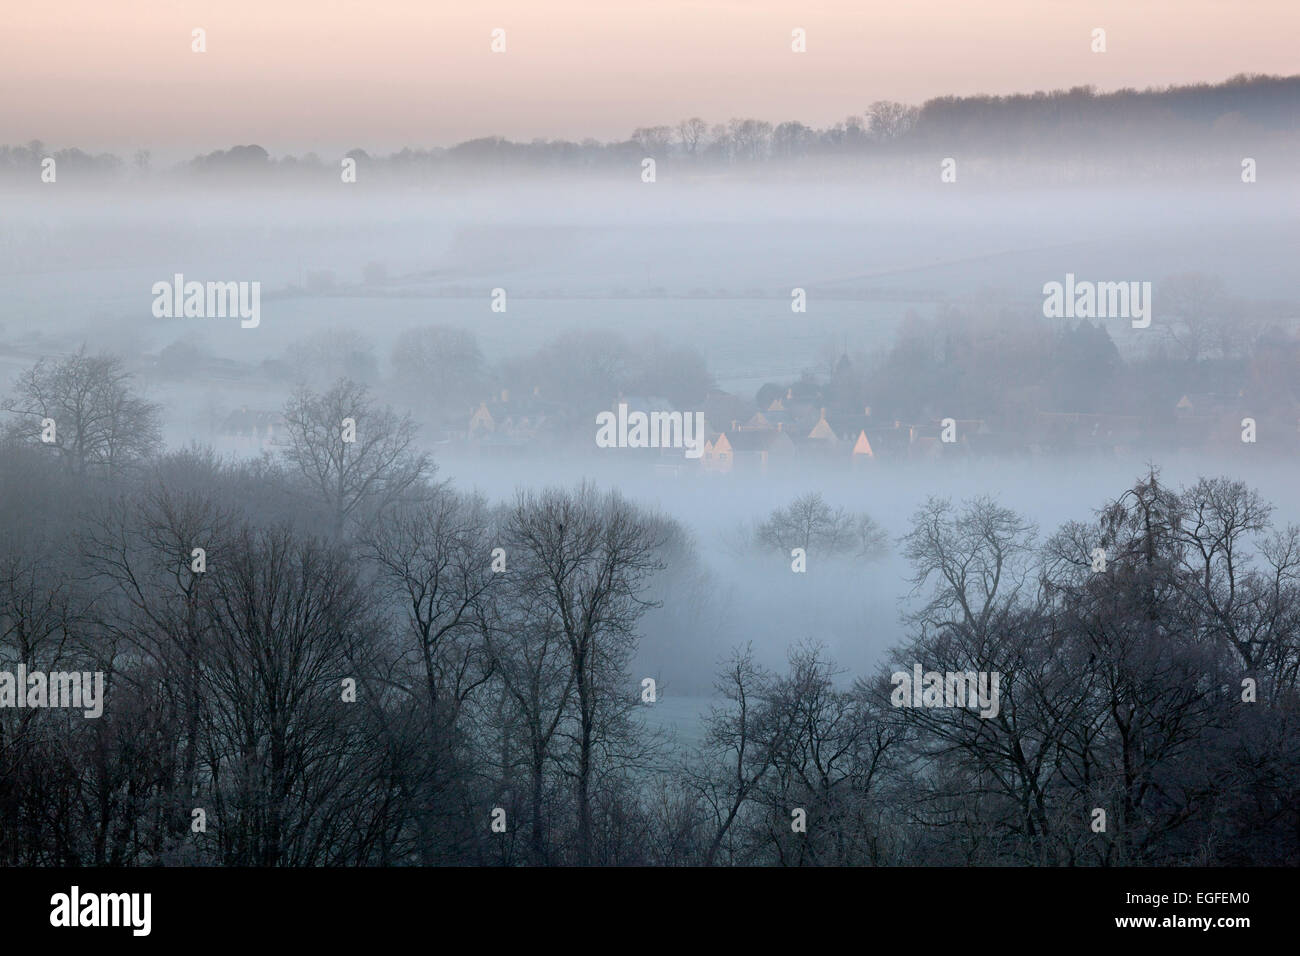 Winter view of Lower Swell village in dawn frost and fog, Stow-on-the-Wold, Cotswolds, Gloucestershire, England, - Stock Image